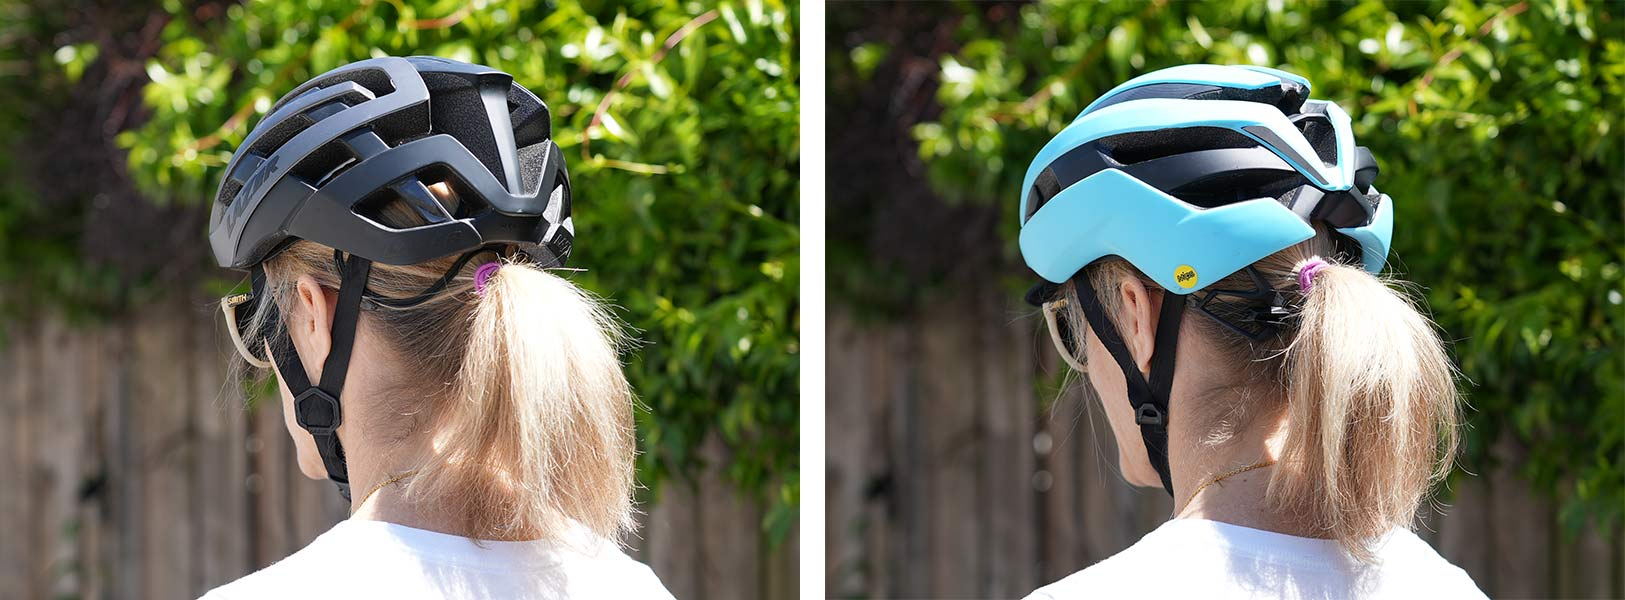 womens bicycle helmets that fit a ponytail